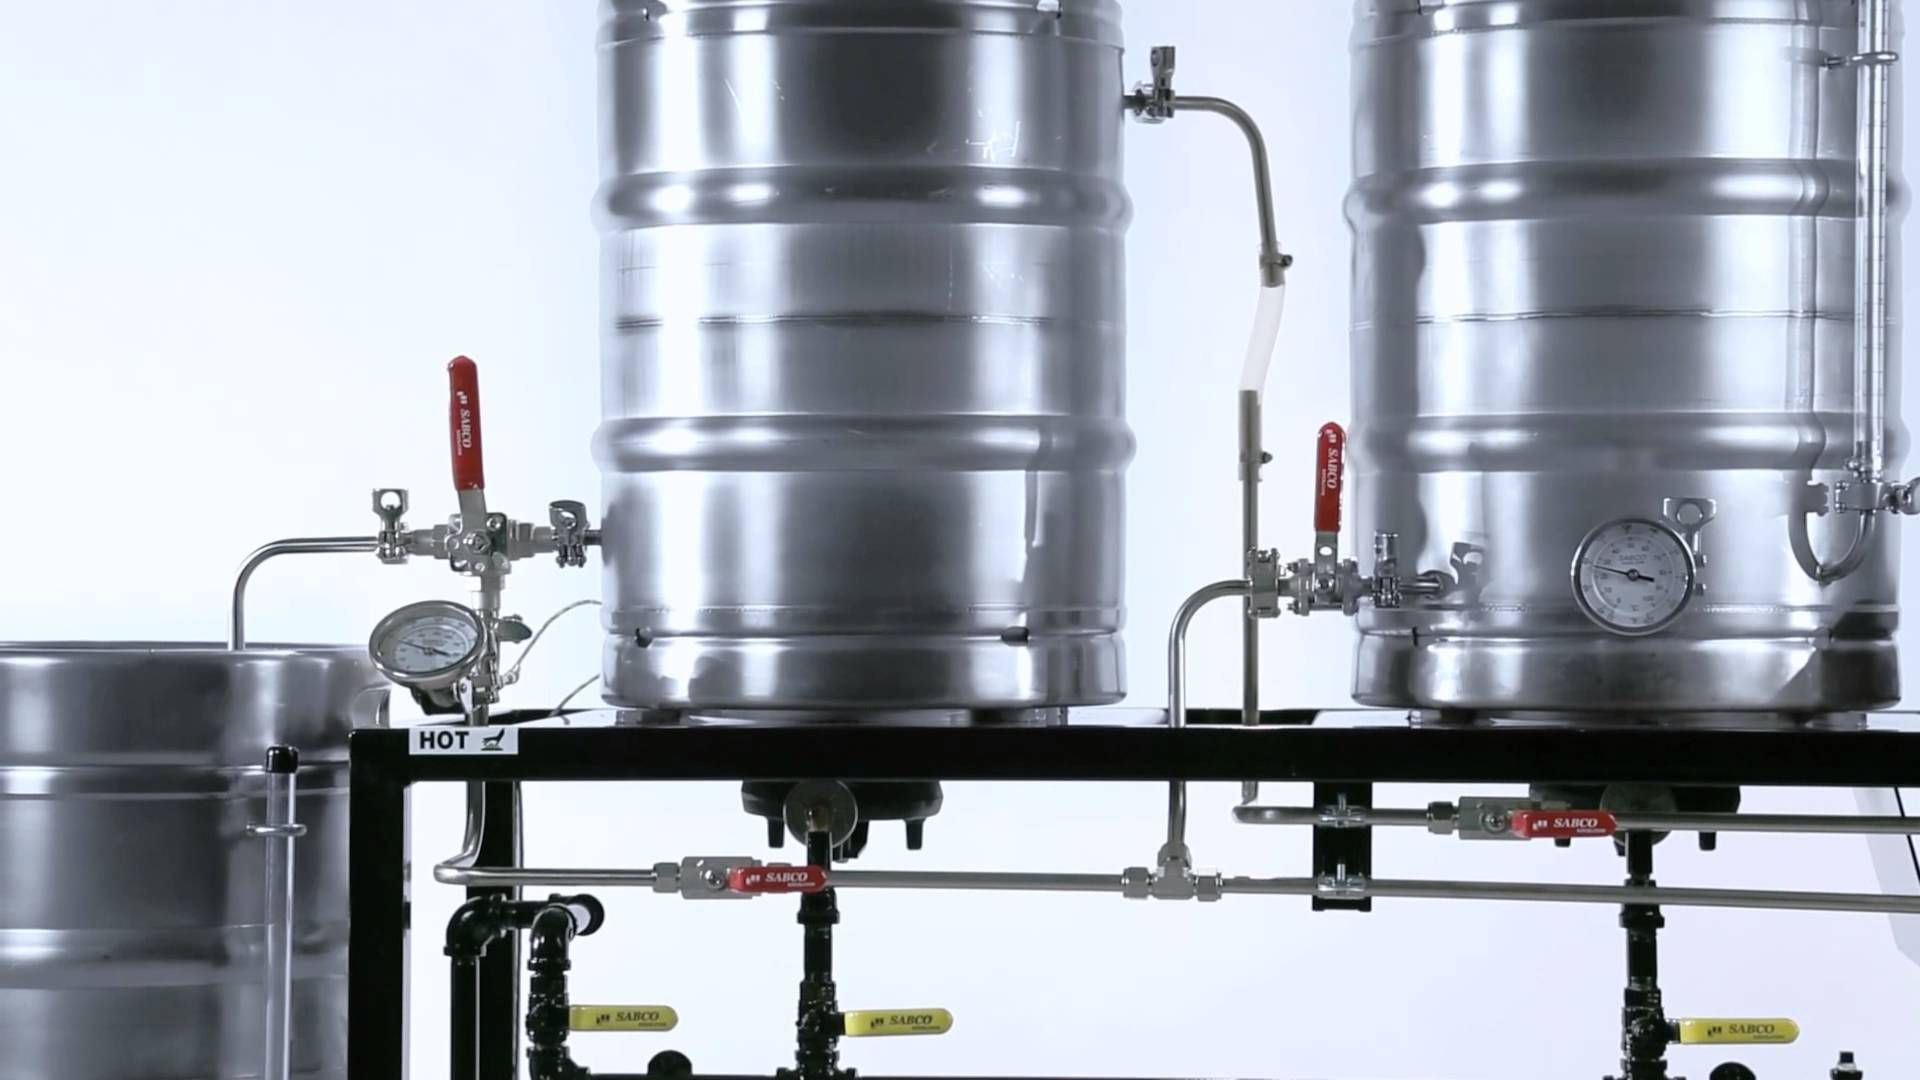 Brew Magic Brewing System By Sabco Brewing Equipment Brewing Home Brewing Equipment